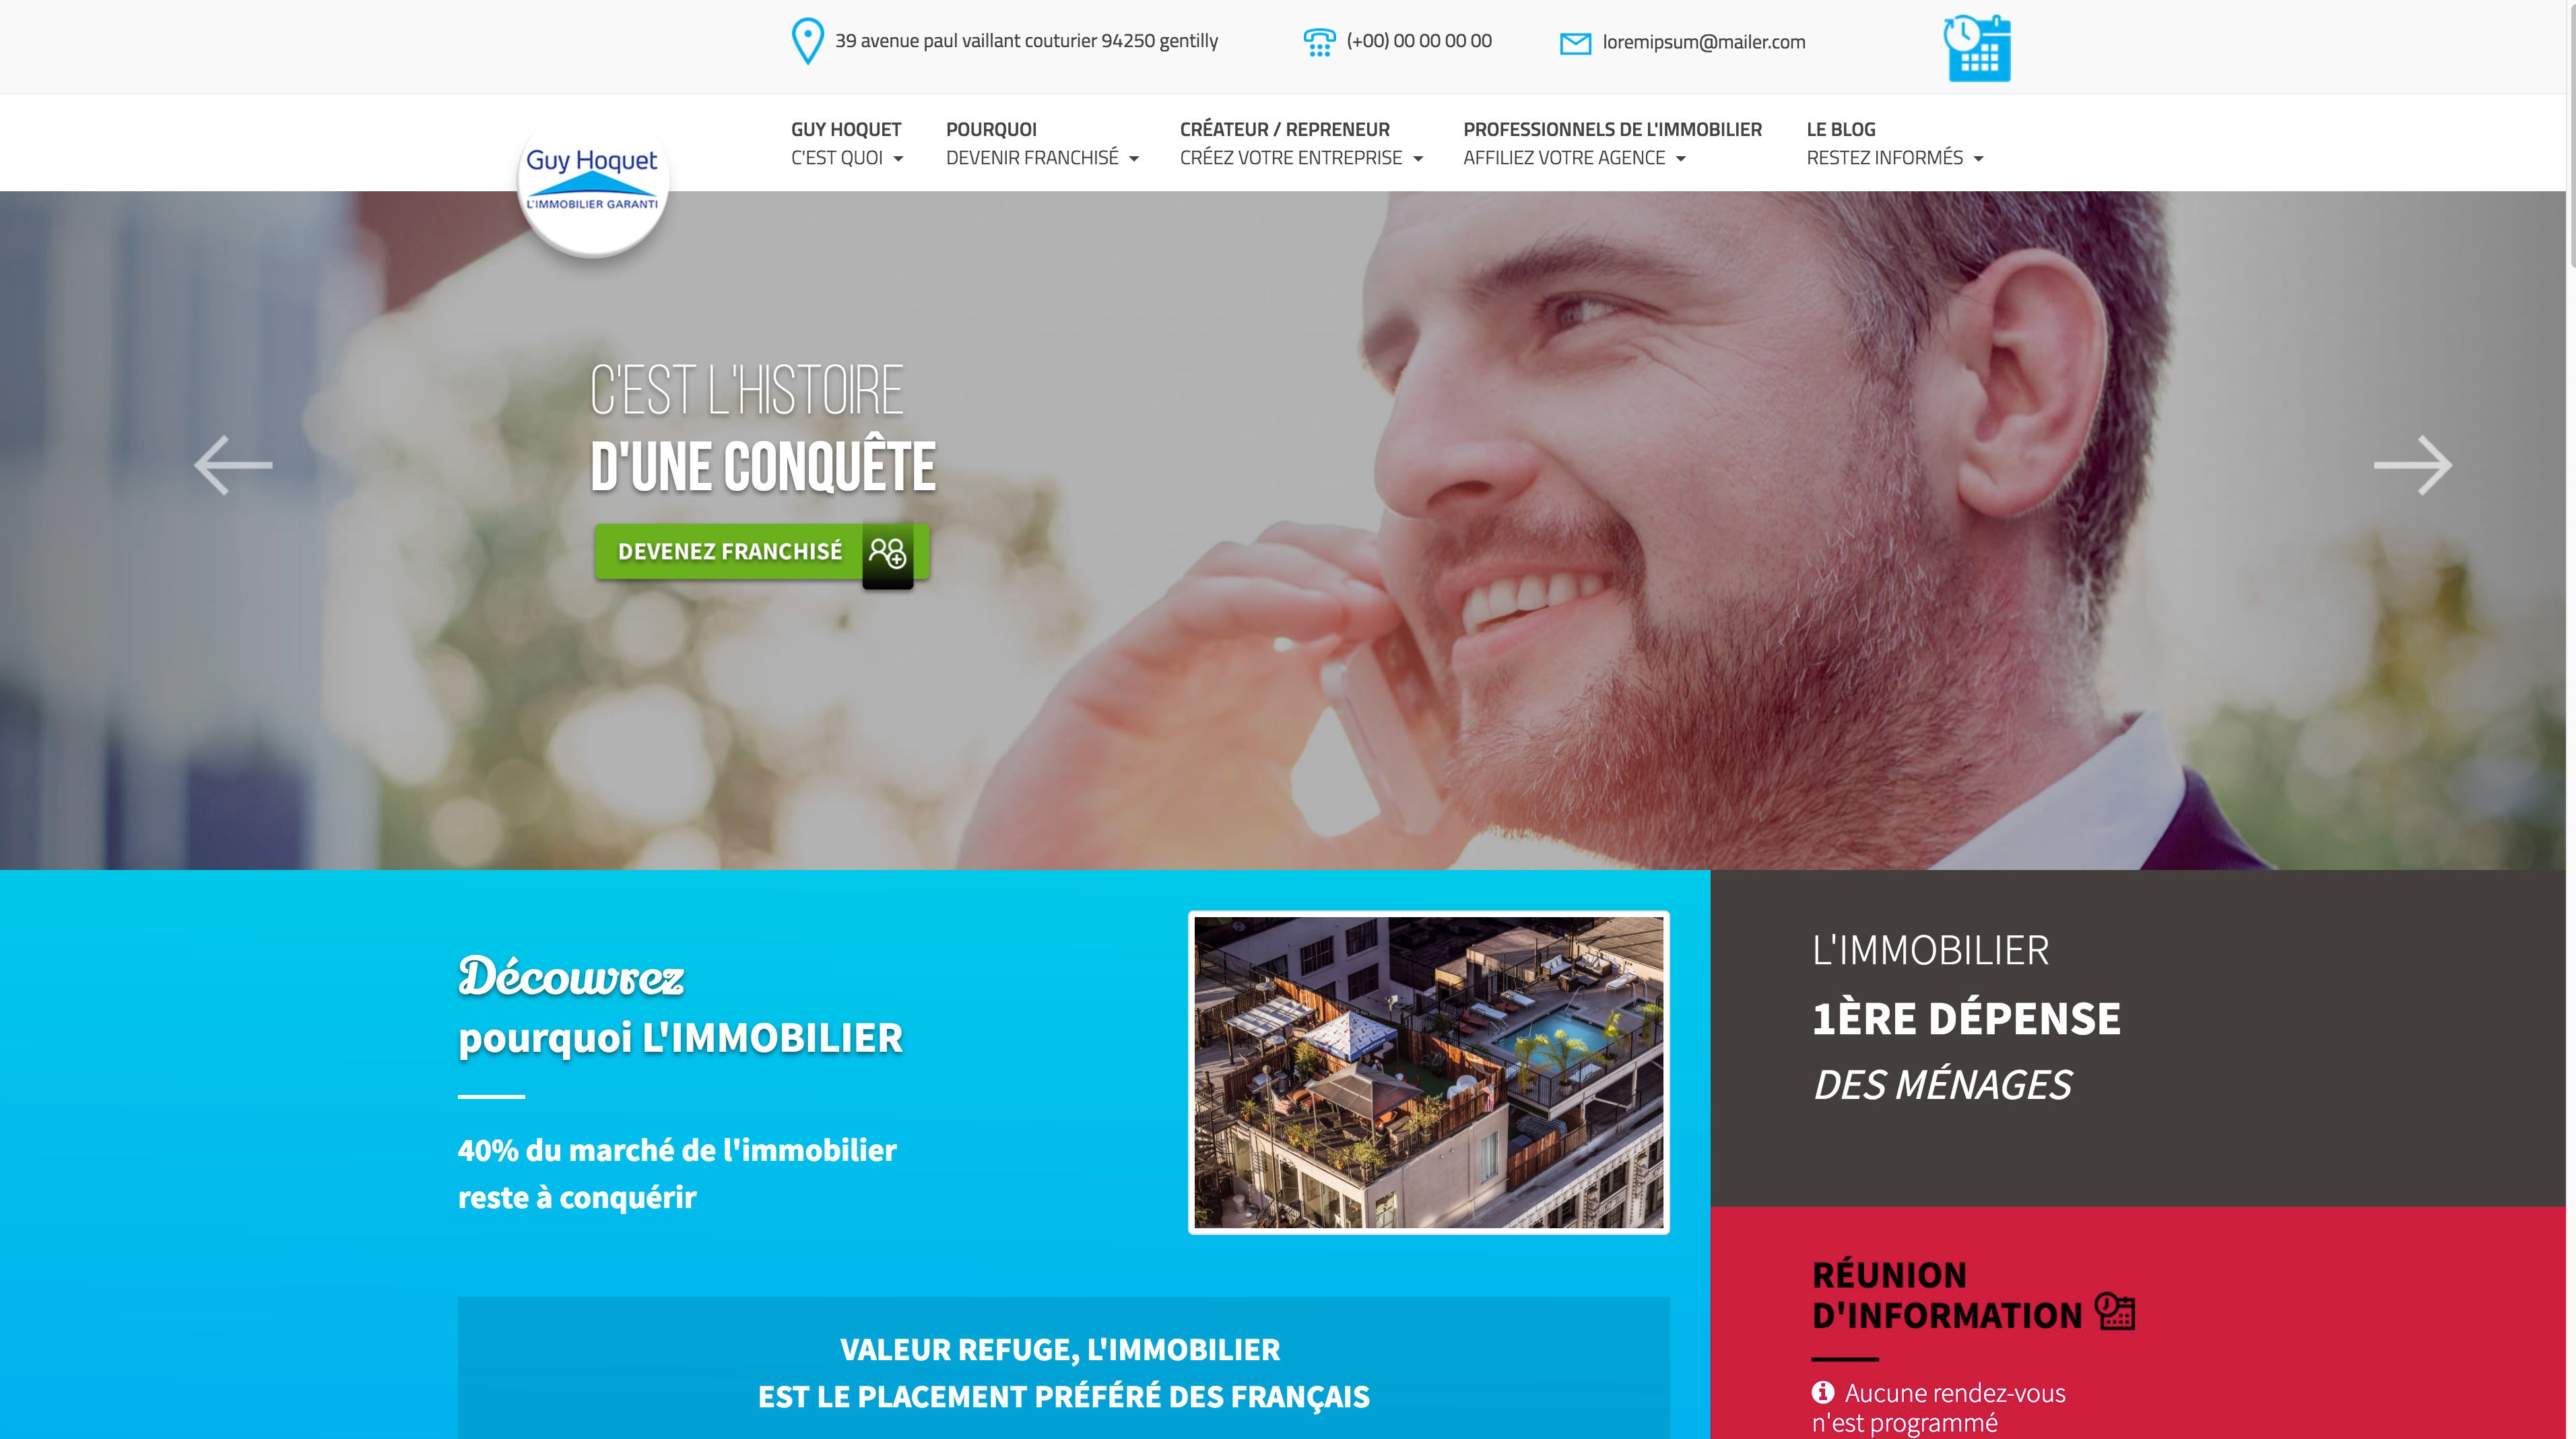 site internet Guy Hoquet Entreprendre 2017 - Cabinet d'affaires transaction en fonds de commerce et Immobilier d'entreprise